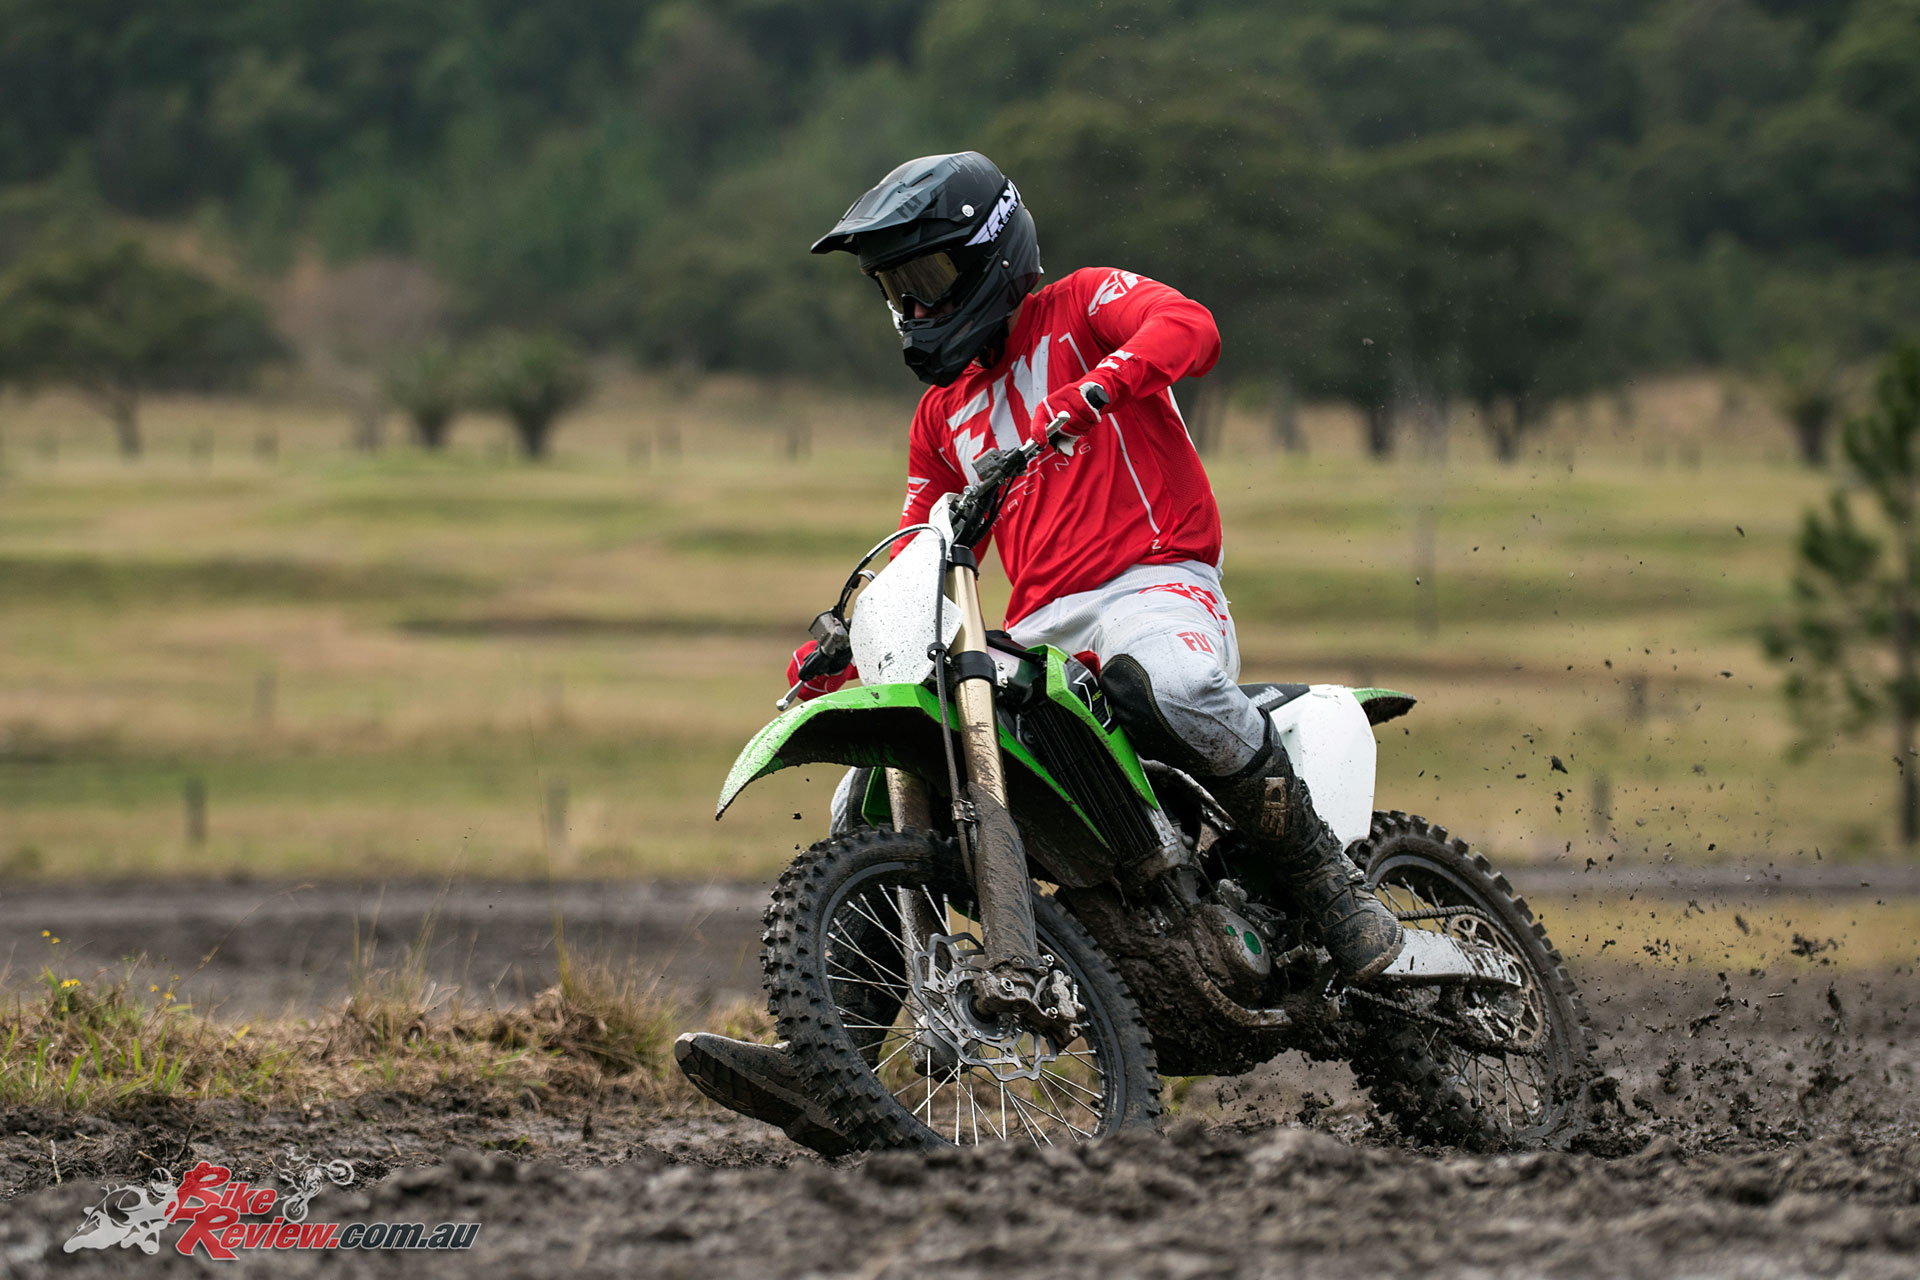 The muddy track proved a challenge for fully testing the new suspension setup